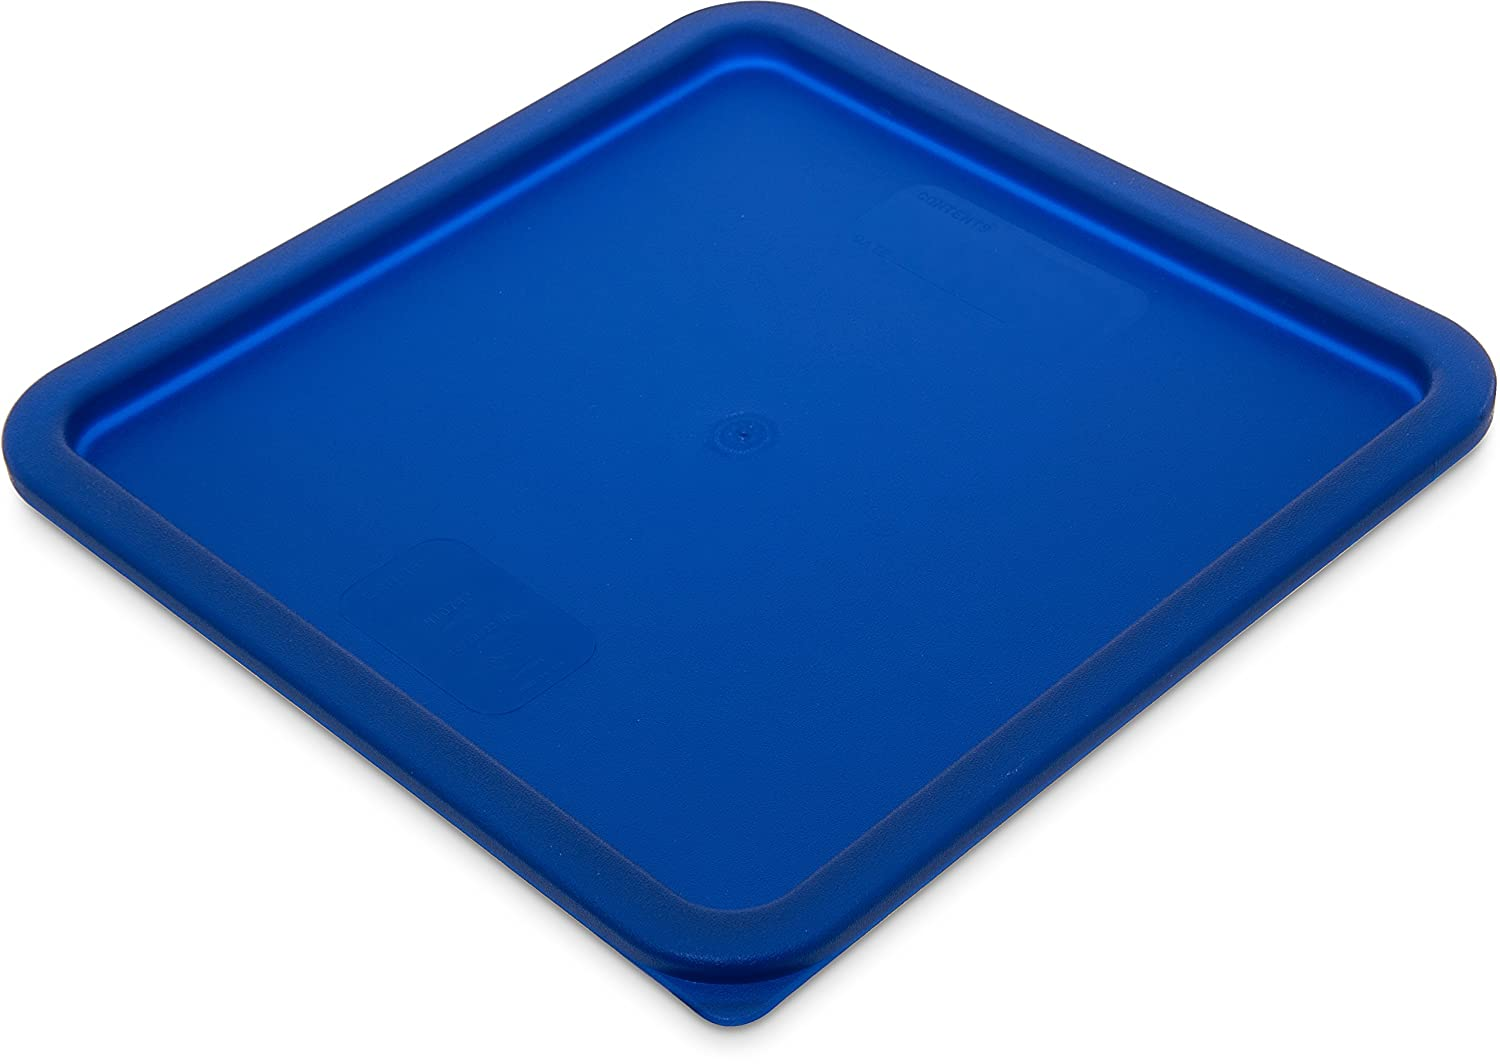 Carlisle 1074260 StorPlus Square Container Lid, 12-18-22 qt, Royal Blue